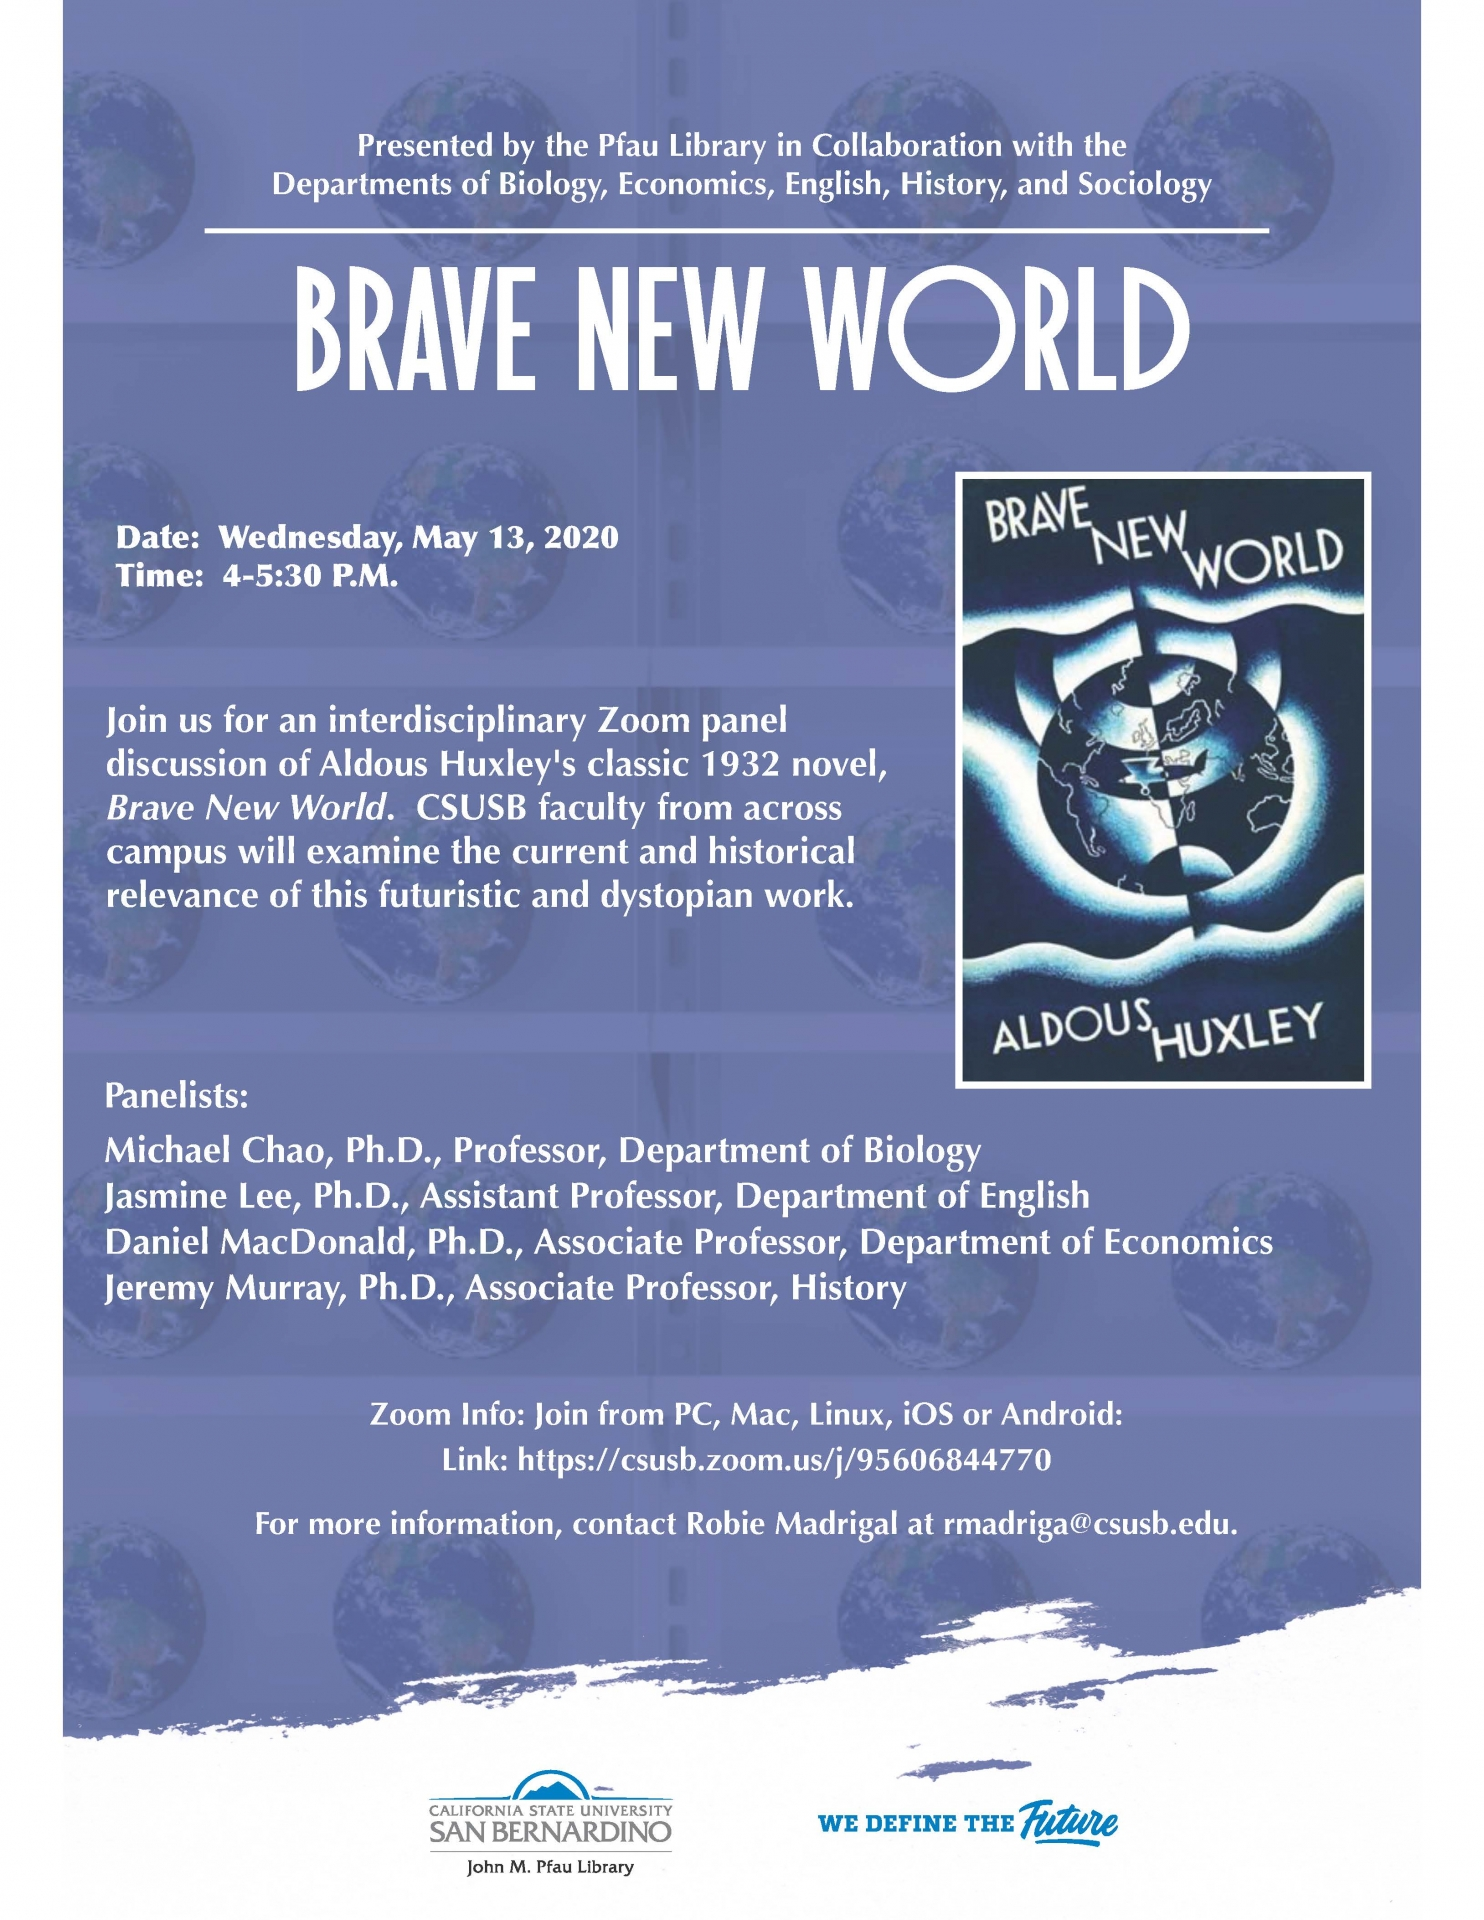 Library Brave New World panel discussion flier